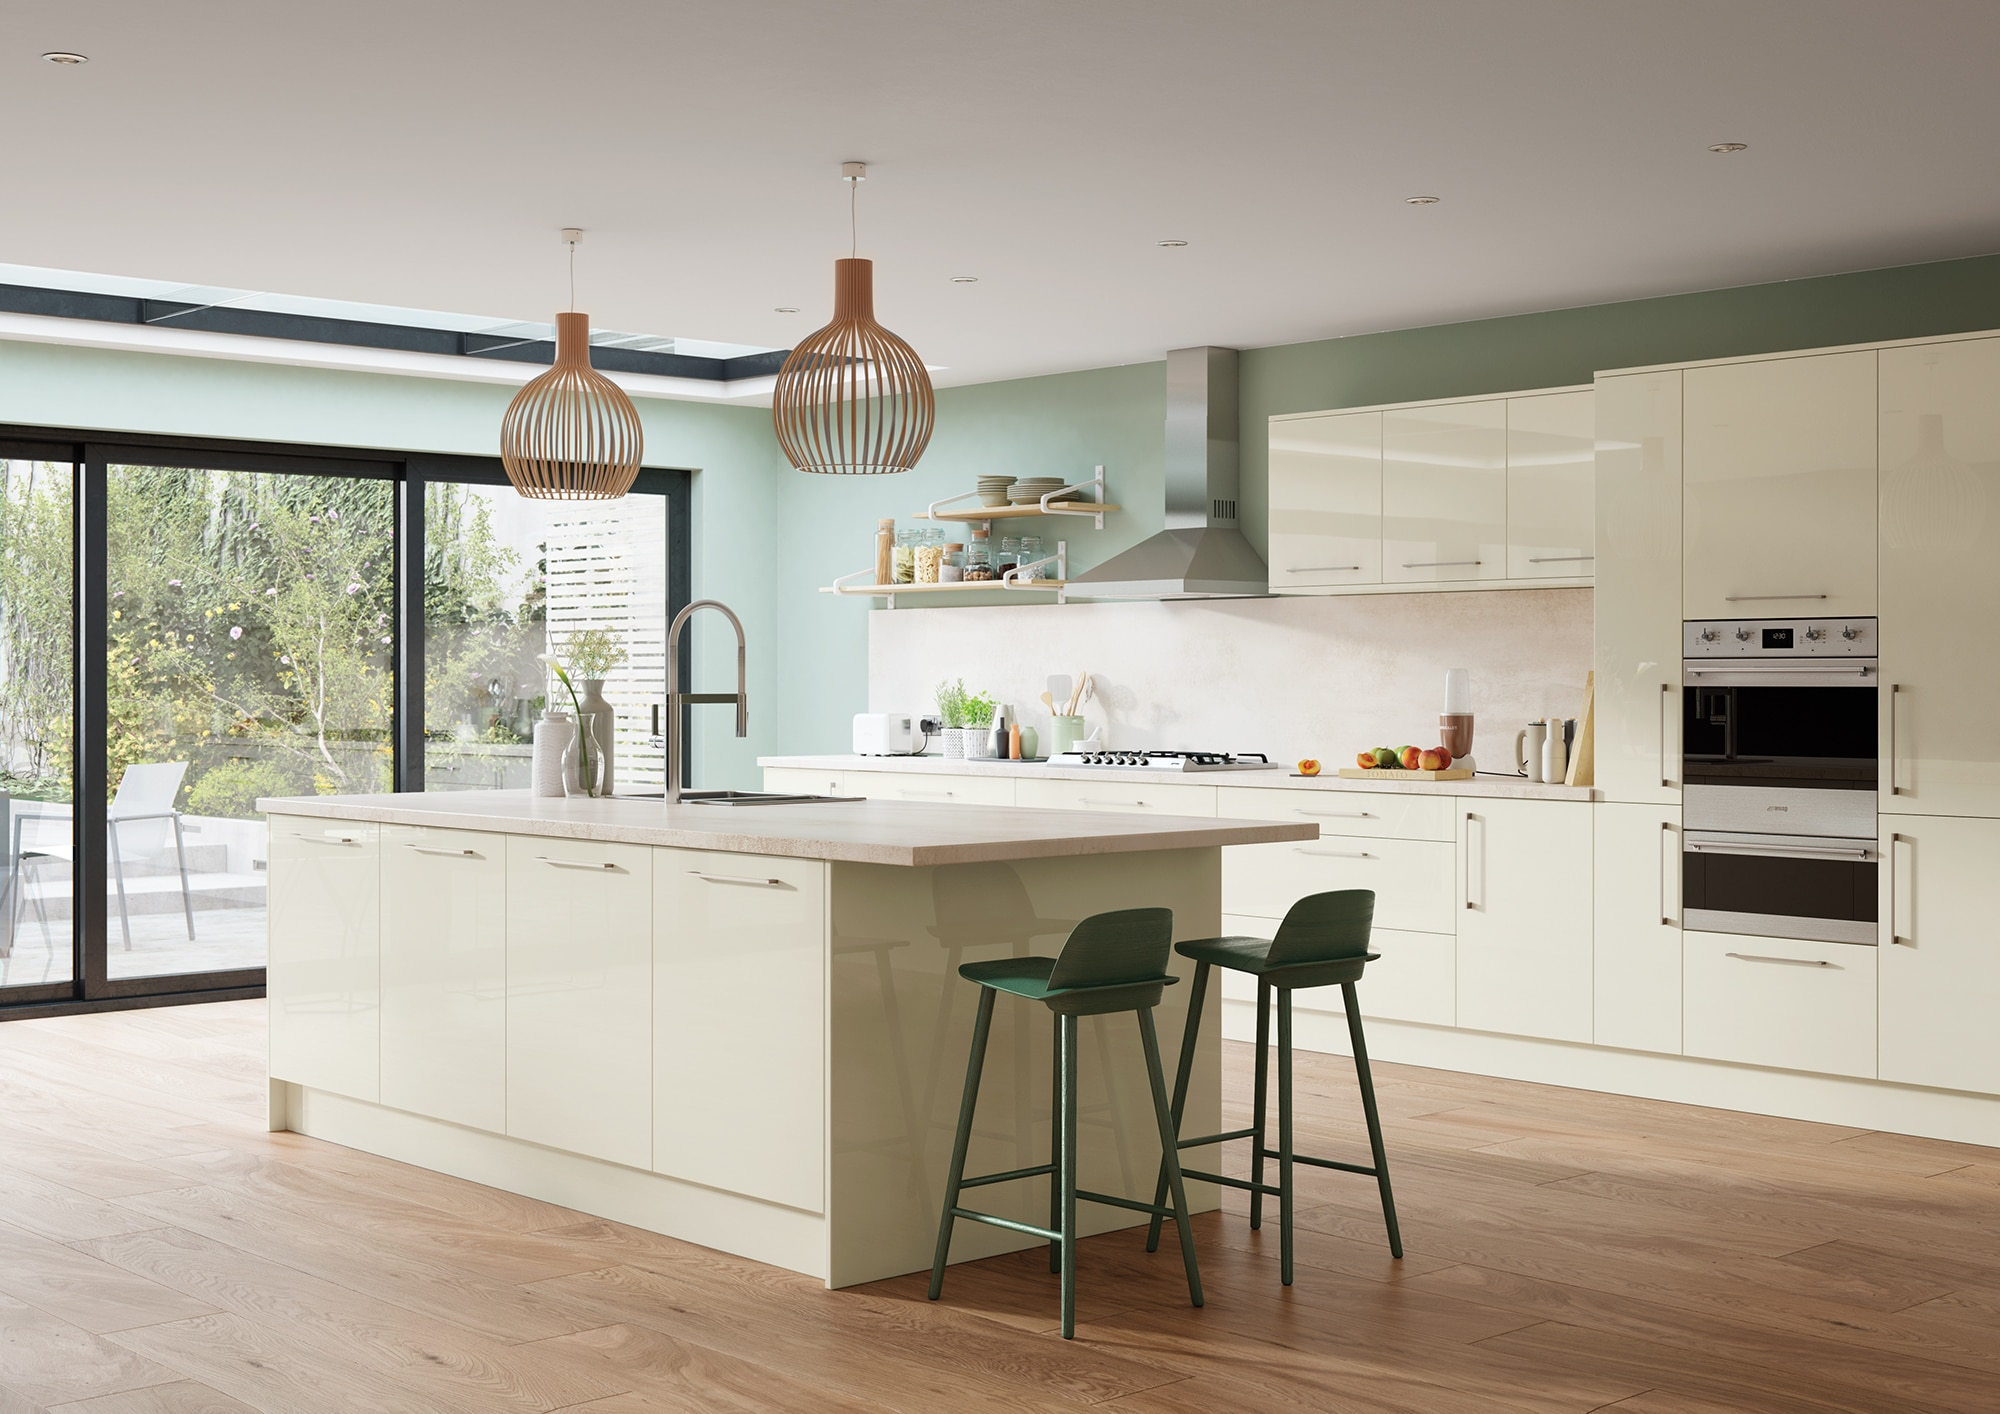 James James Kitchens. Bespoke Handmade Kitchens In Berkhamsted And ...